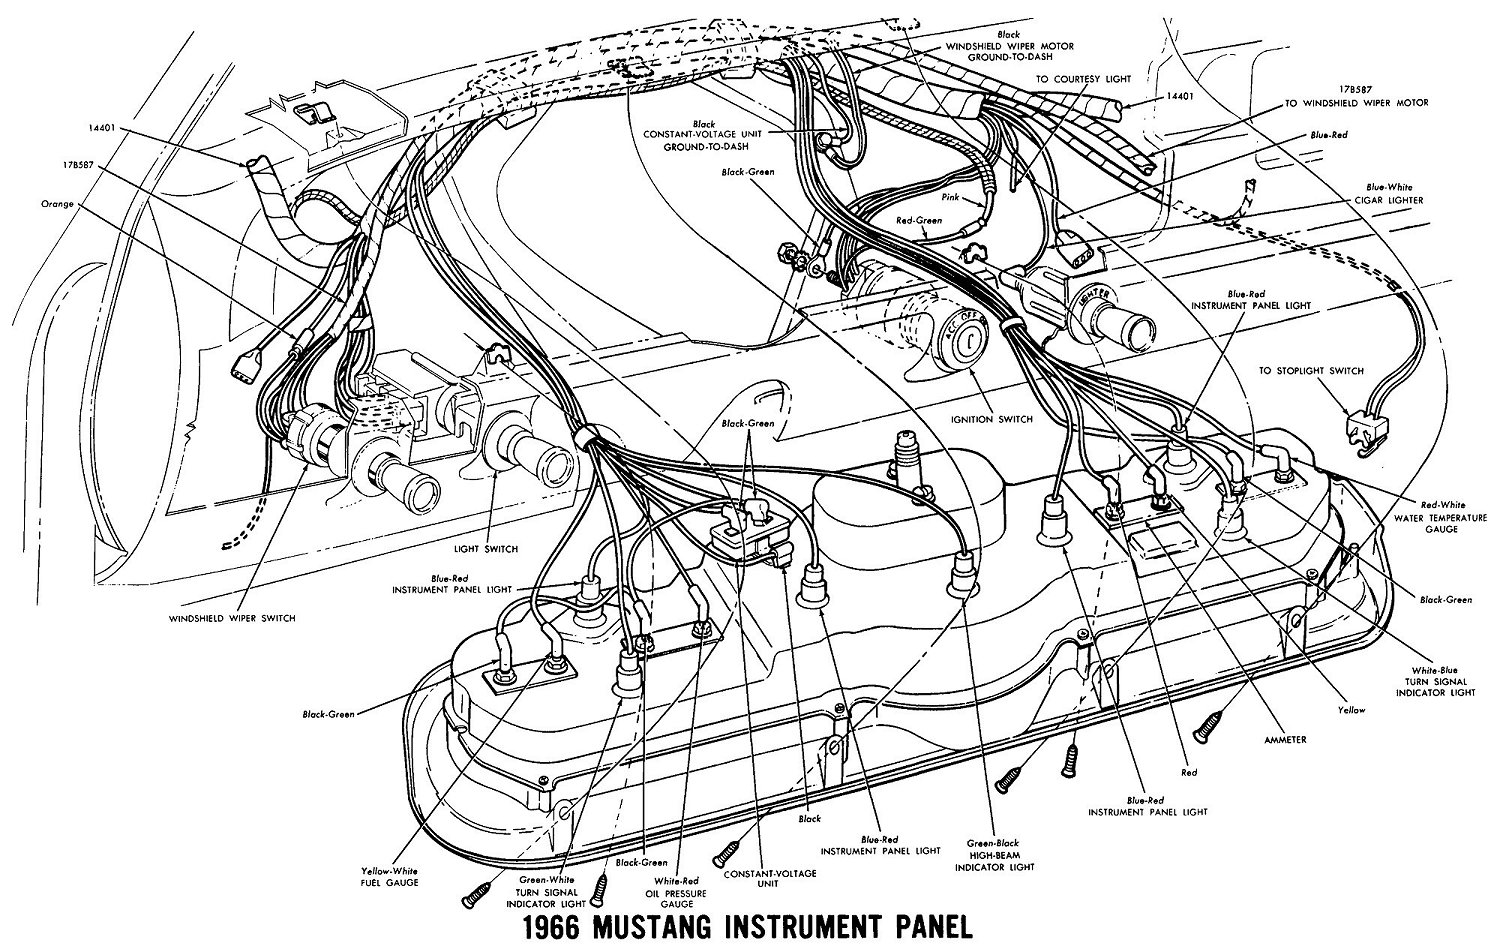 66instr 1966 mustang wiring diagrams average joe restoration 1965 mustang wiring harness diagram at fashall.co